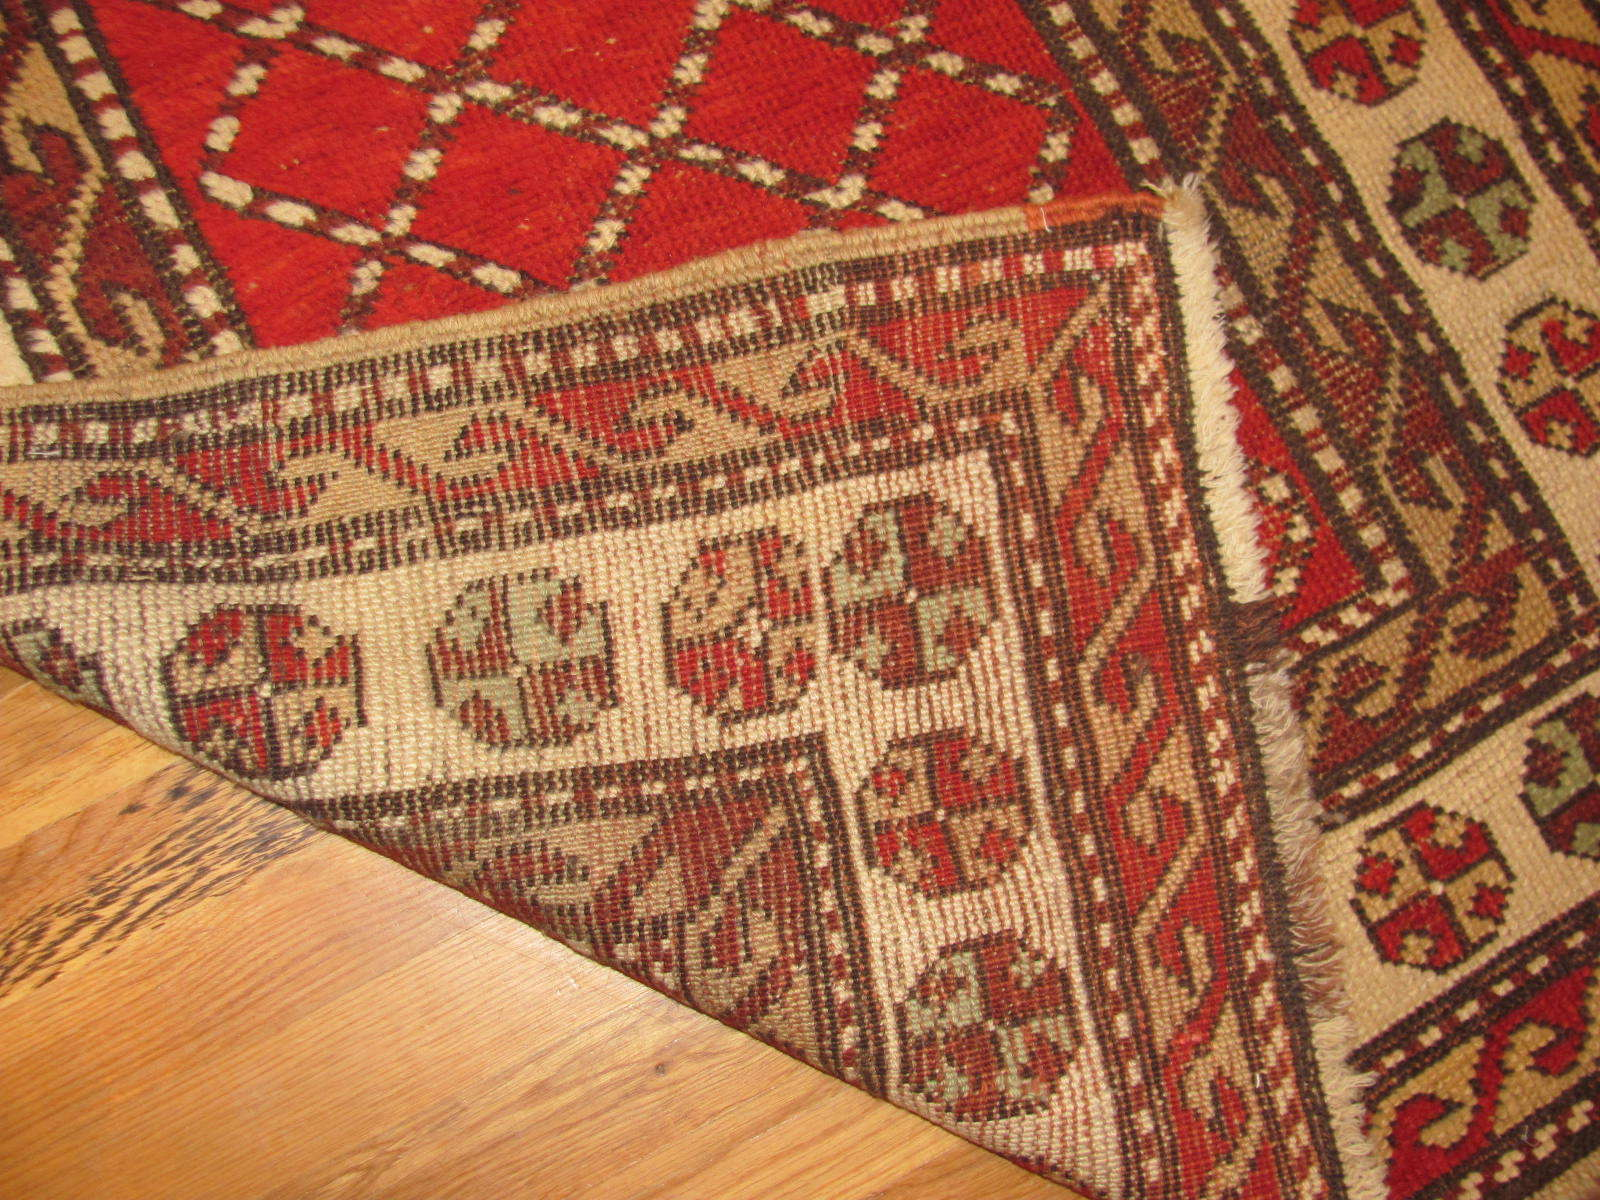 24547 antique persian northwest kurd rug 3,4x7,1 -2